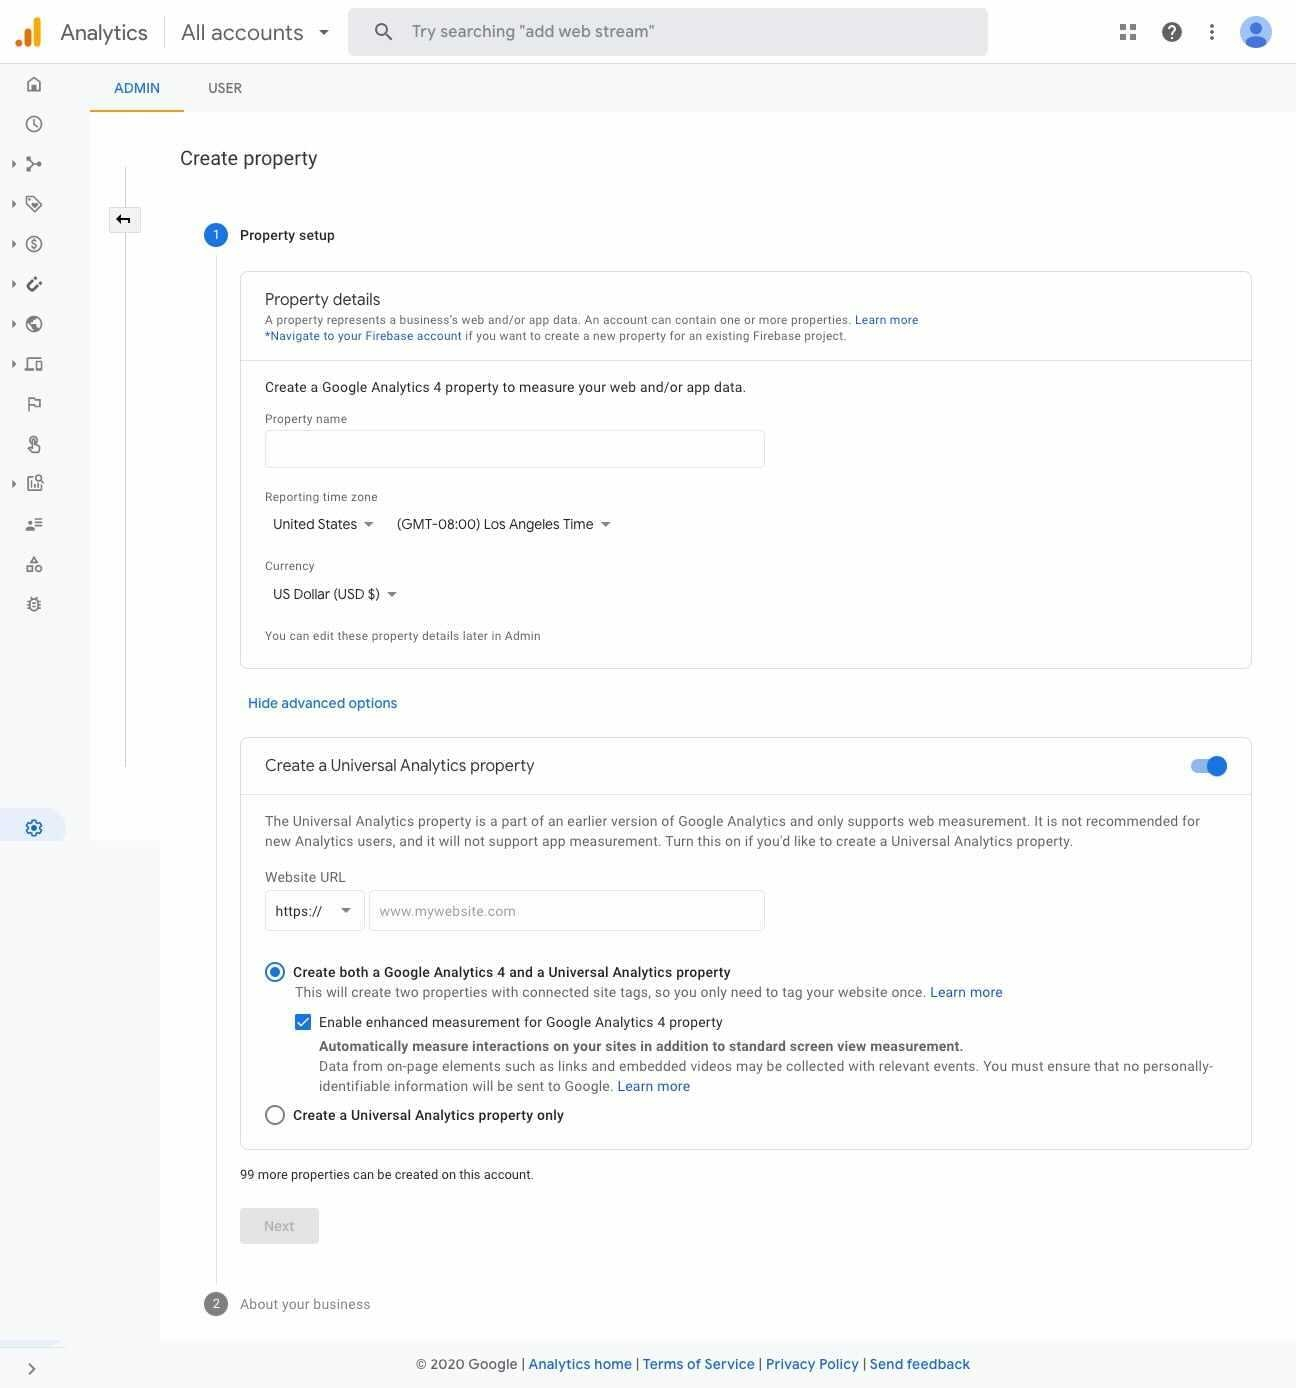 Google Analytics 4 and UA Properties: What You Need to Know